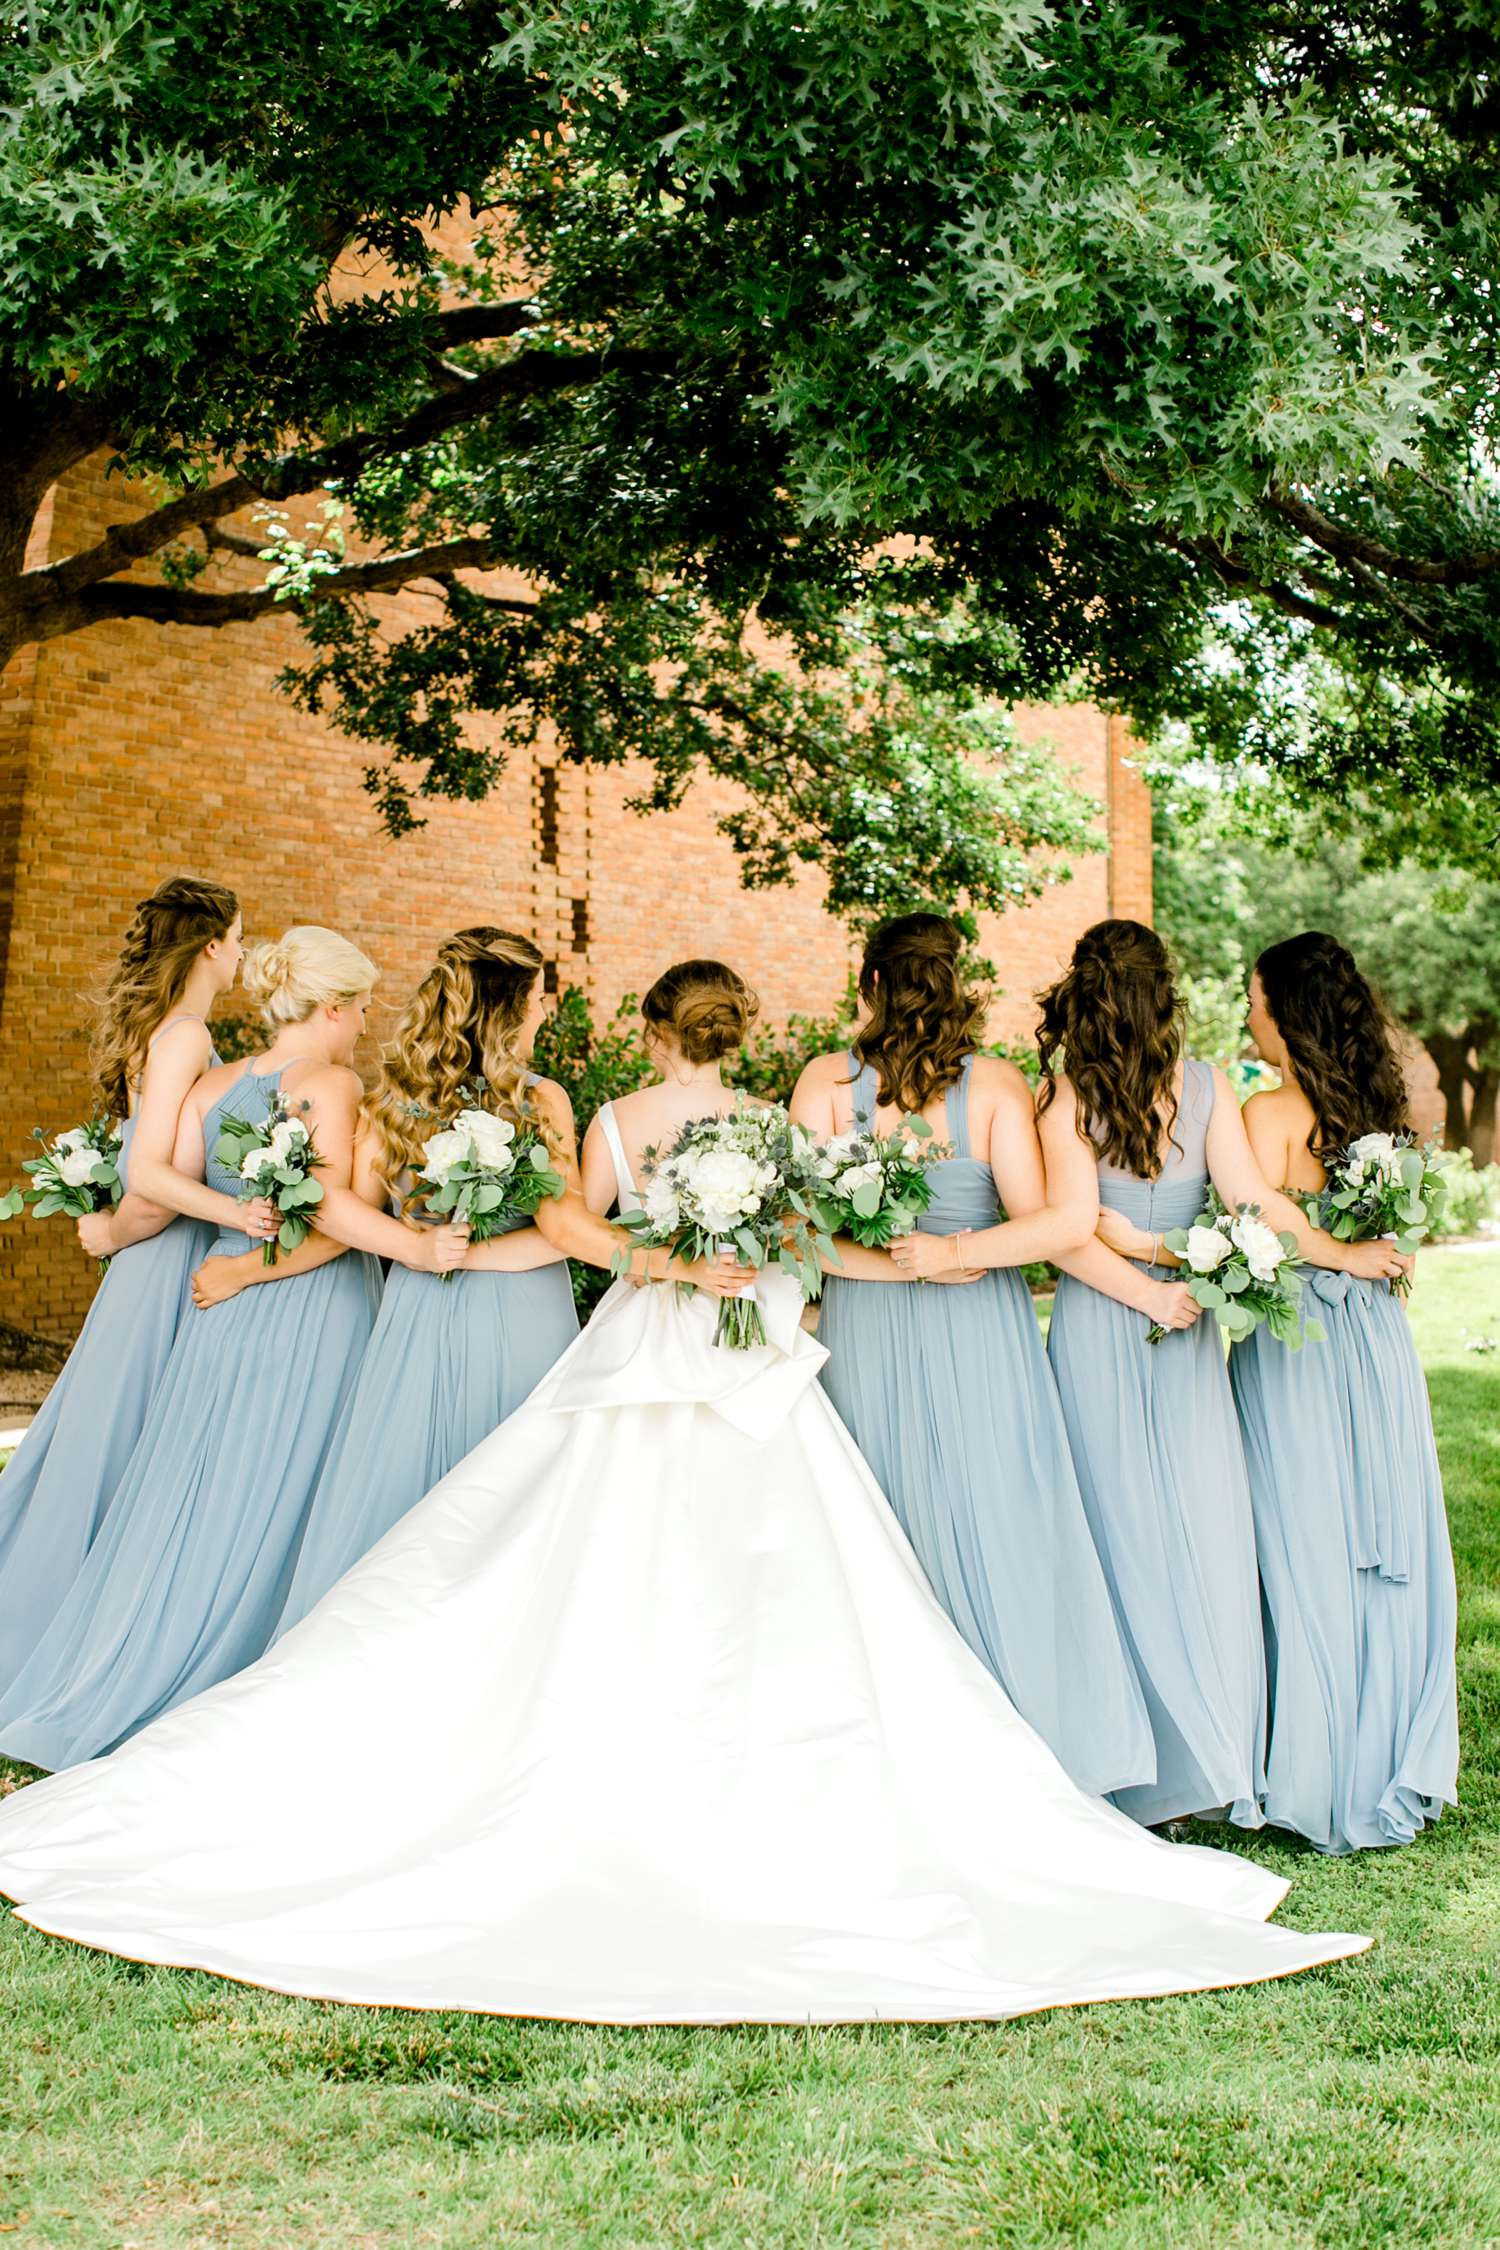 HANNAH+CRAIG+CHILDS+TEXAS+TECH+WEDDING+ALLEEJ+LUBBOCK+PHOTOGRAPHER_0024.jpg